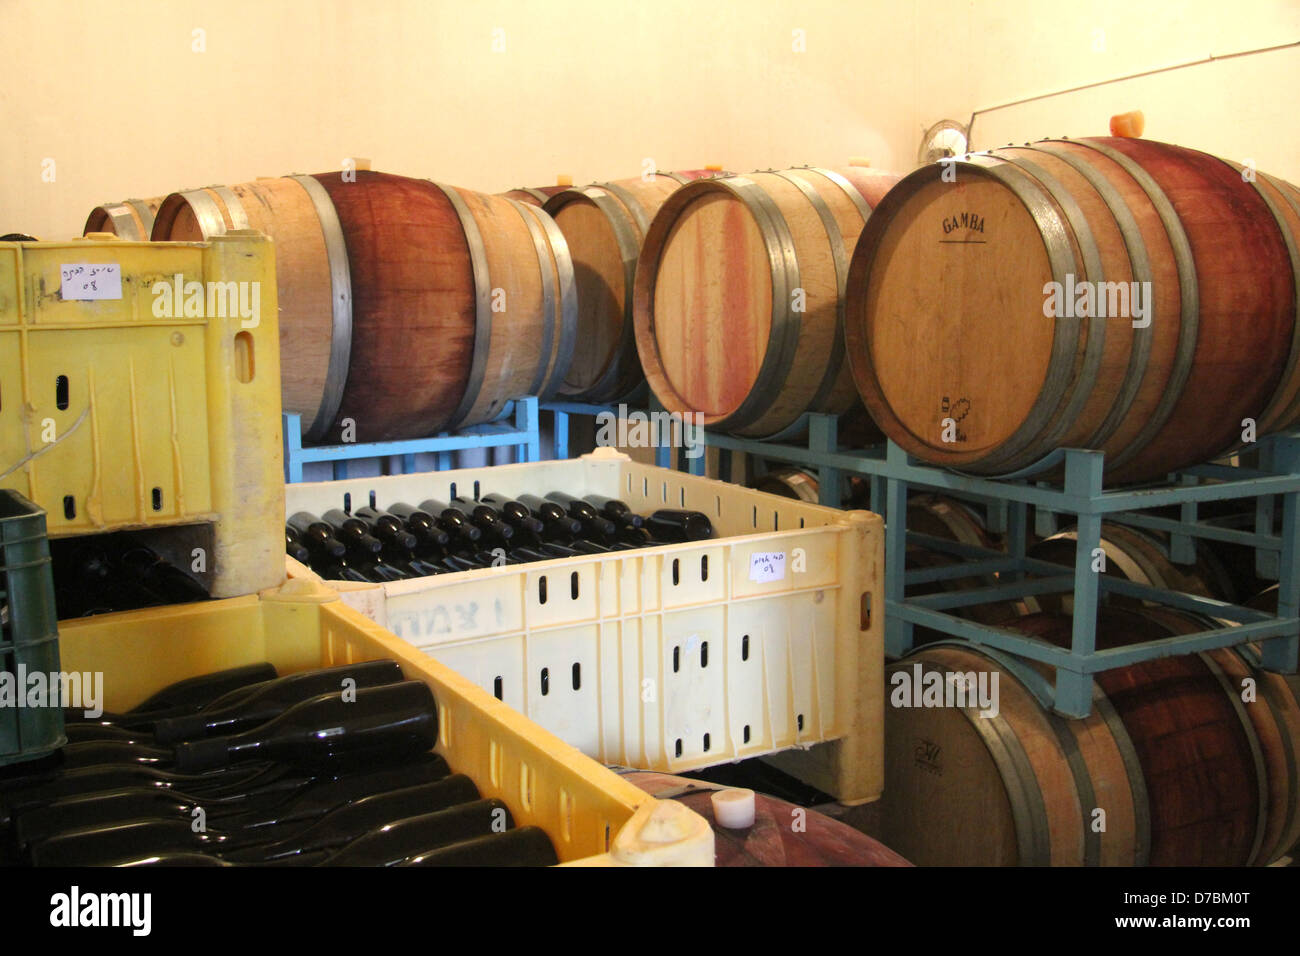 The wine cellar of Neot Smadar Winery in the southern Negev - Stock Image